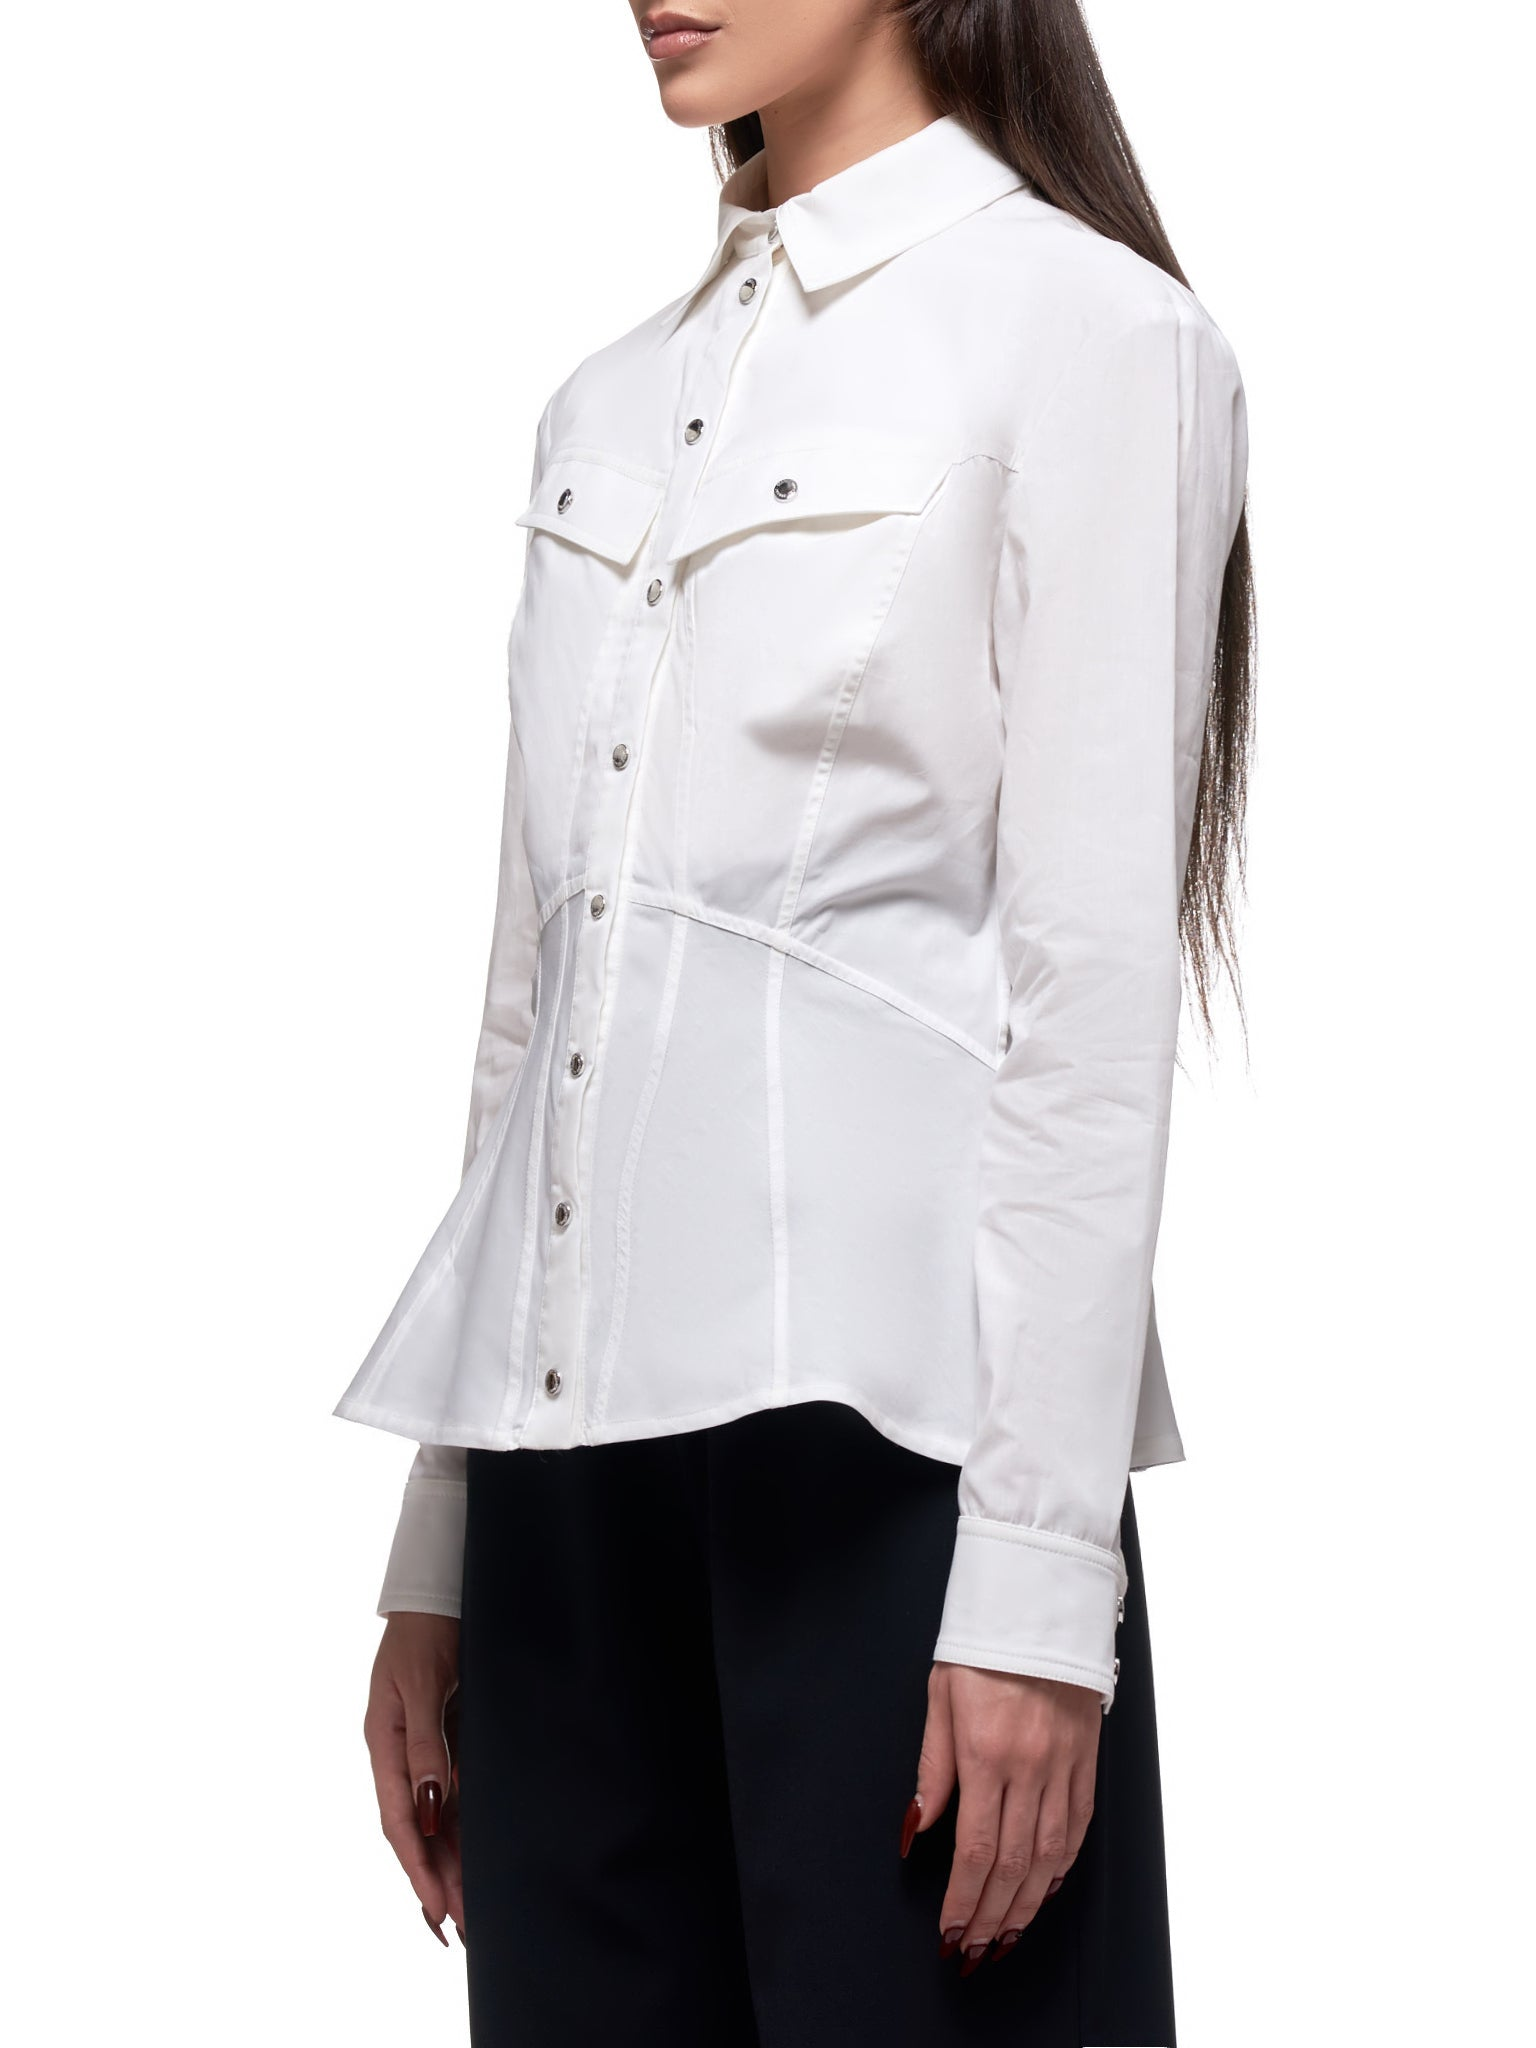 Bias Cut Panelled Shirt (2032-100-9150-OFF-WHITE)